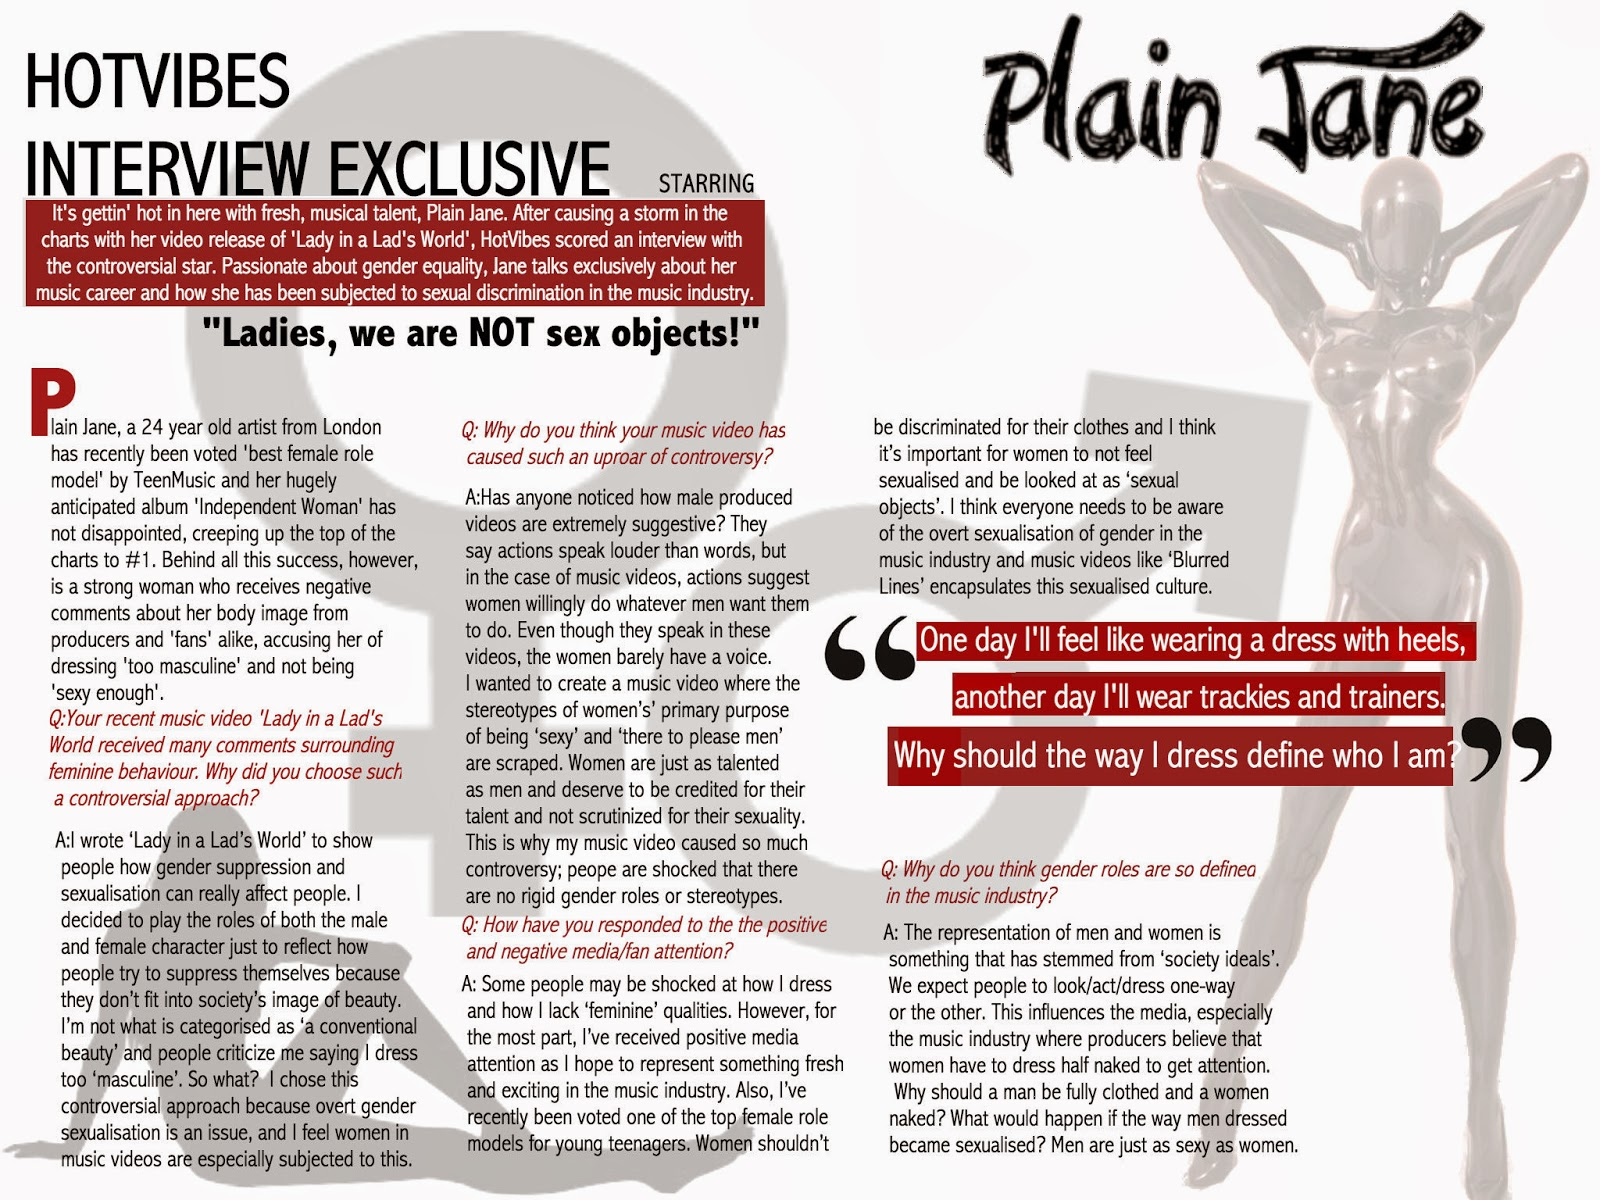 a2 media portfolio article interview layout 14 02 14